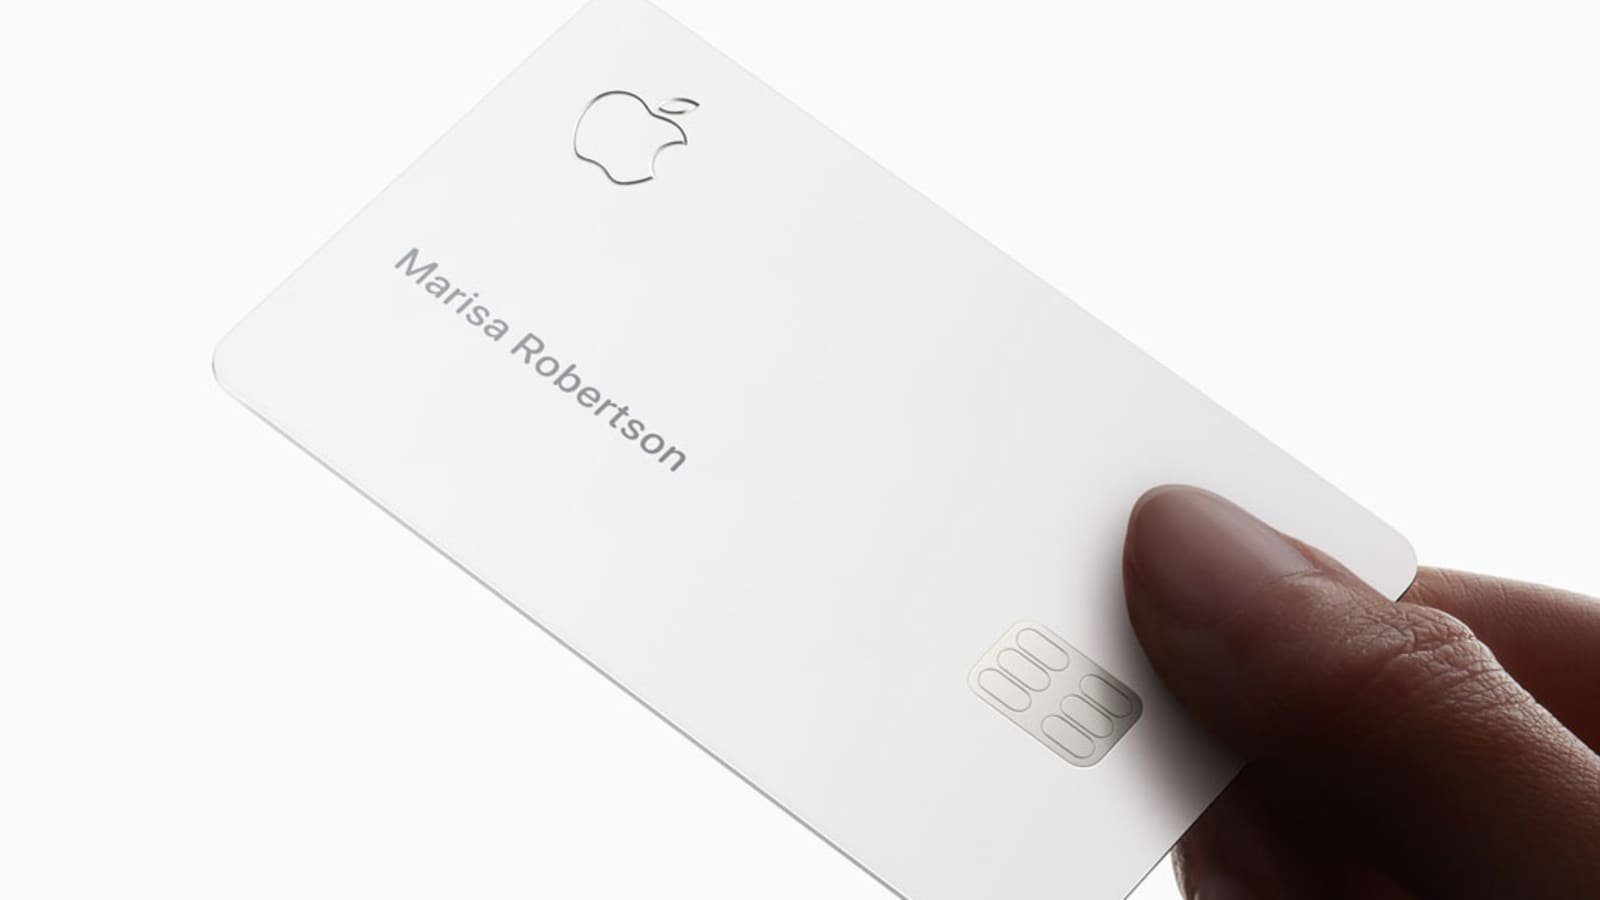 Apple Credit Card Review: Fees, Payment and Security